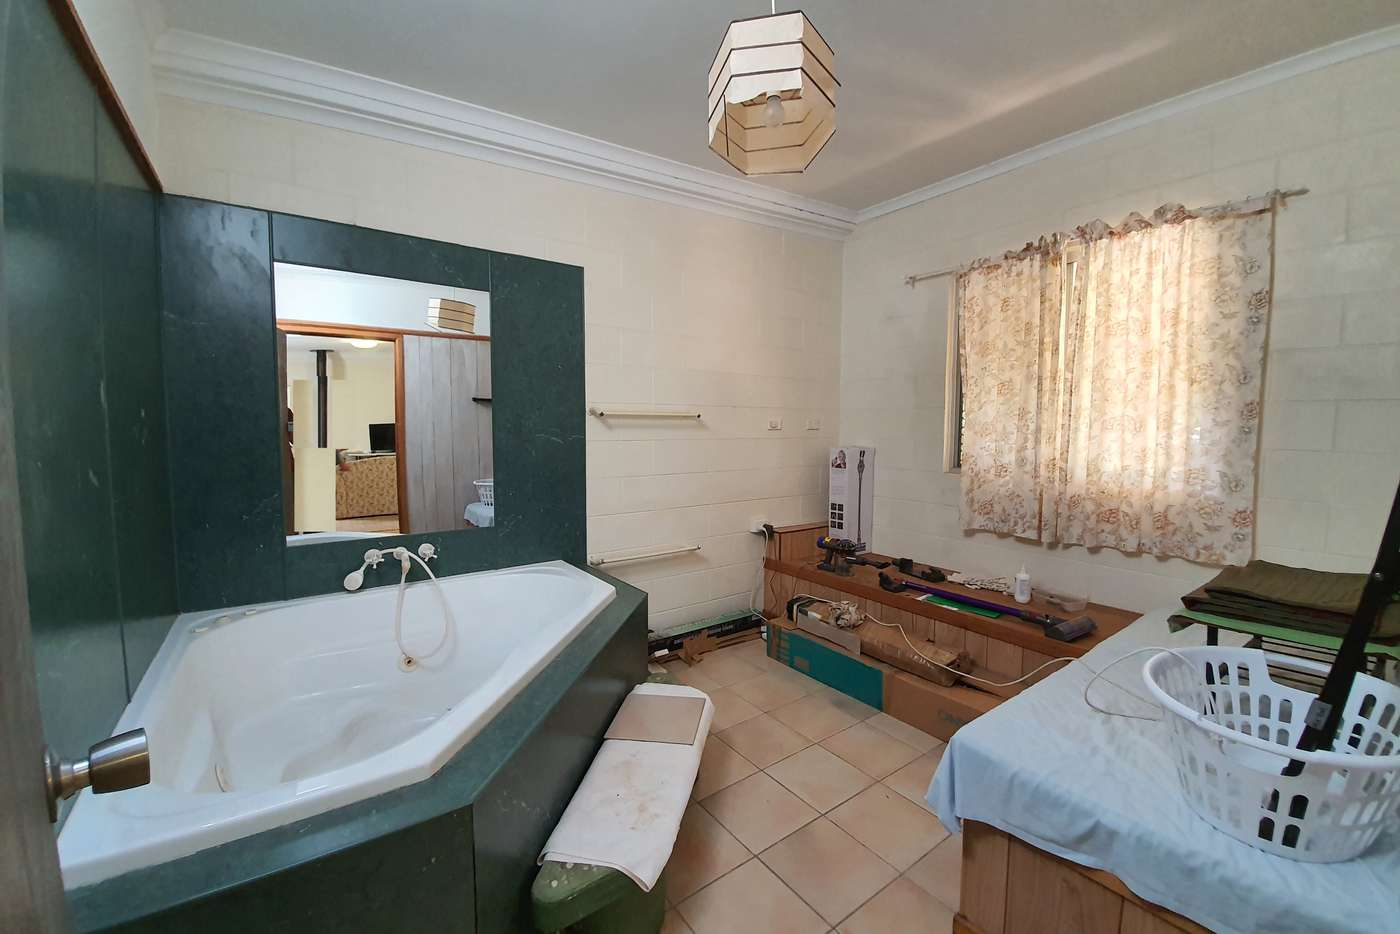 Seventh view of Homely house listing, 3 Cassia Street, Yungaburra QLD 4884